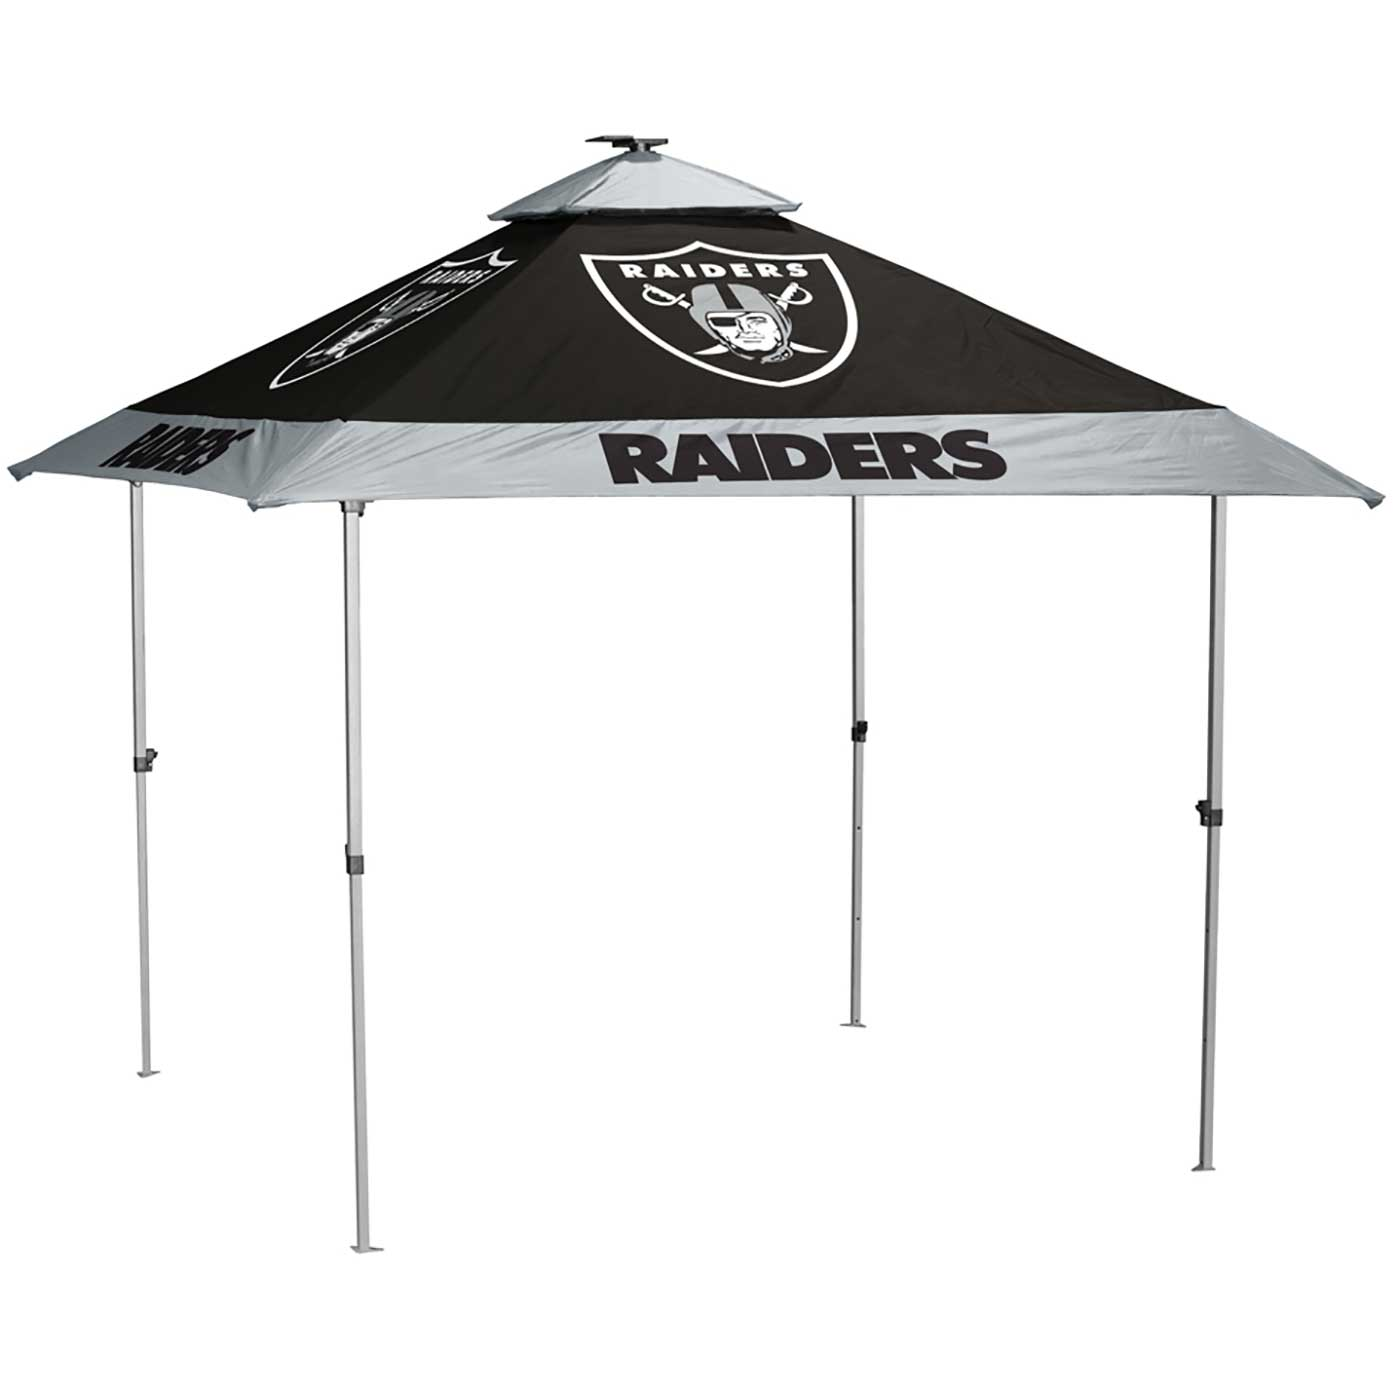 Raiders Pagoda Luxury Tent  sc 1 st  The Raider Image & Pagoda Luxury Tent